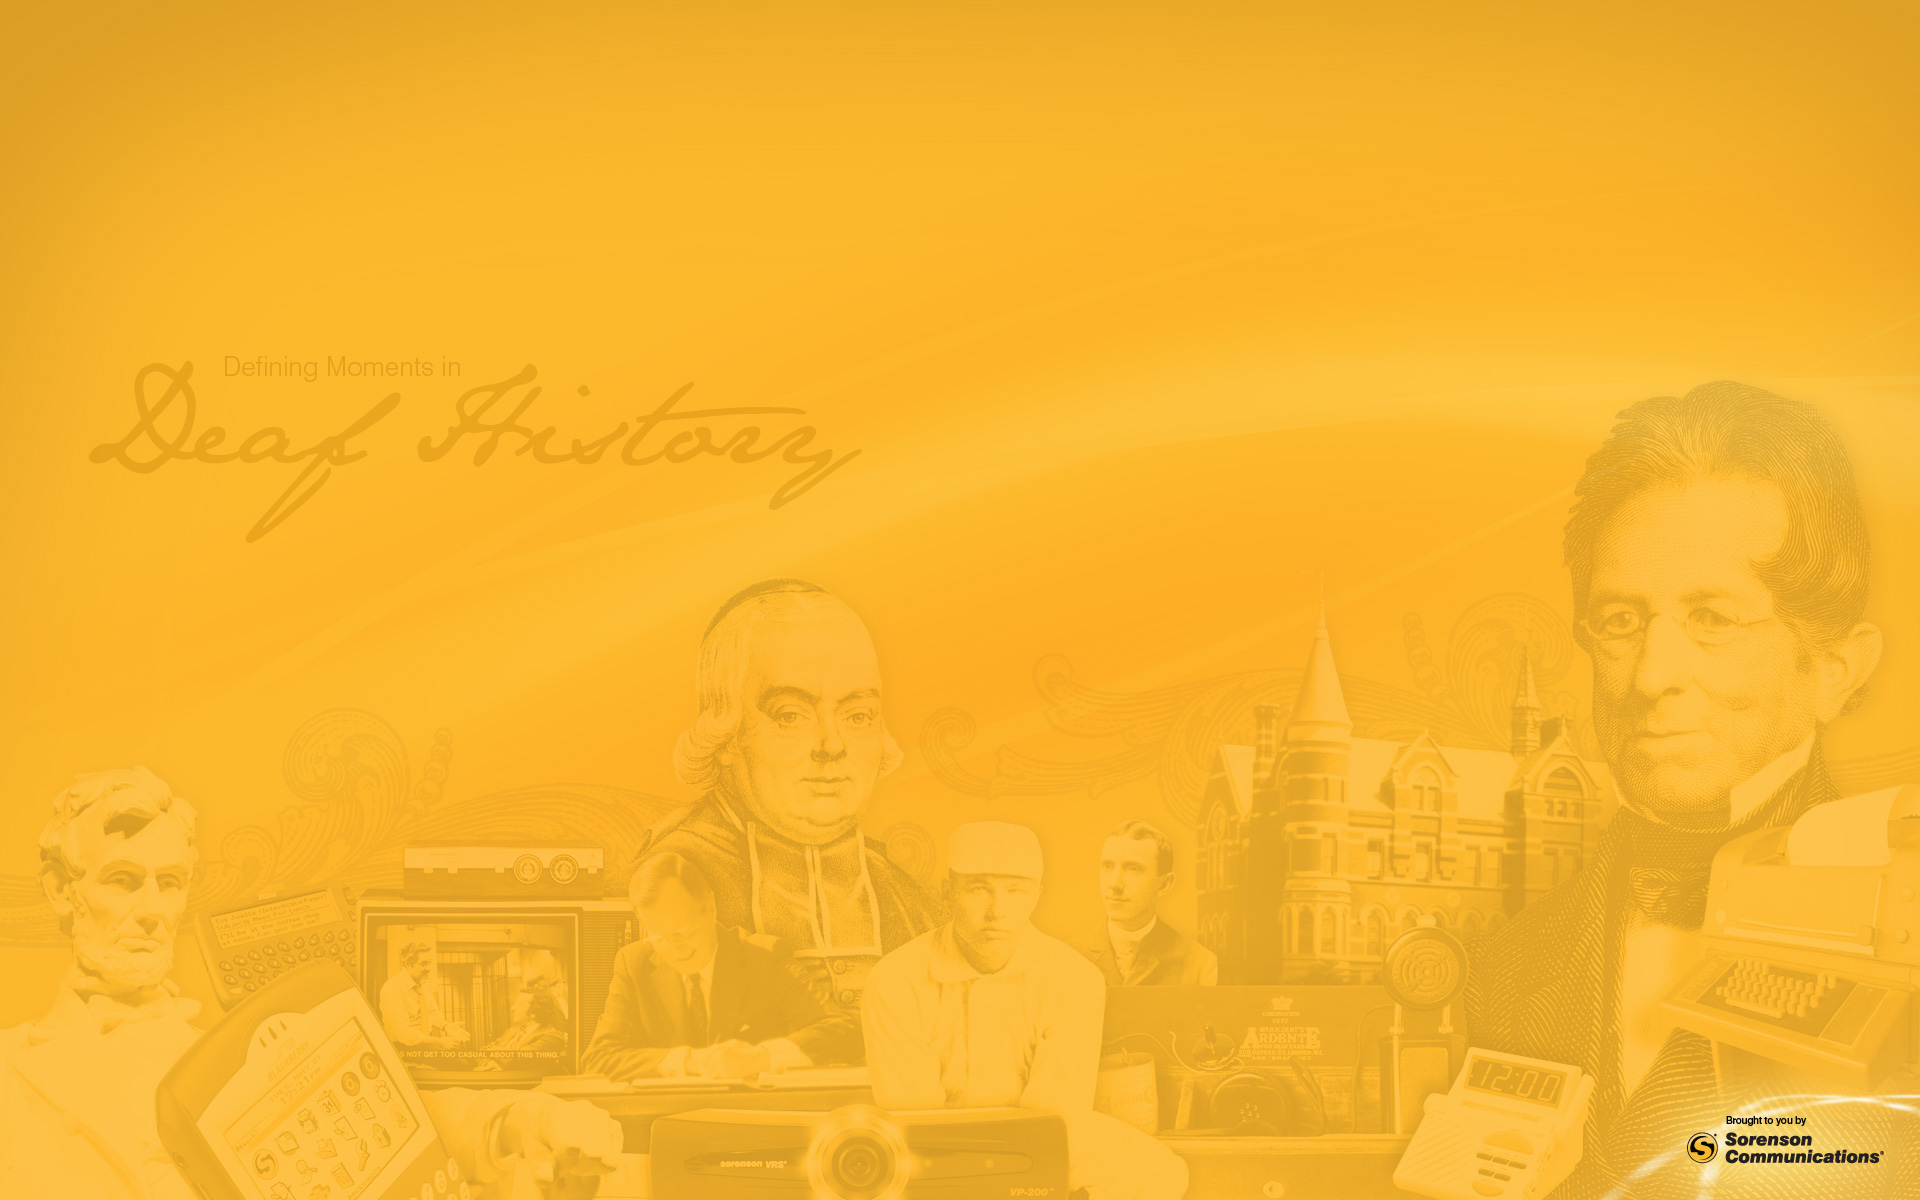 wallpapers history orange images yellow 129689